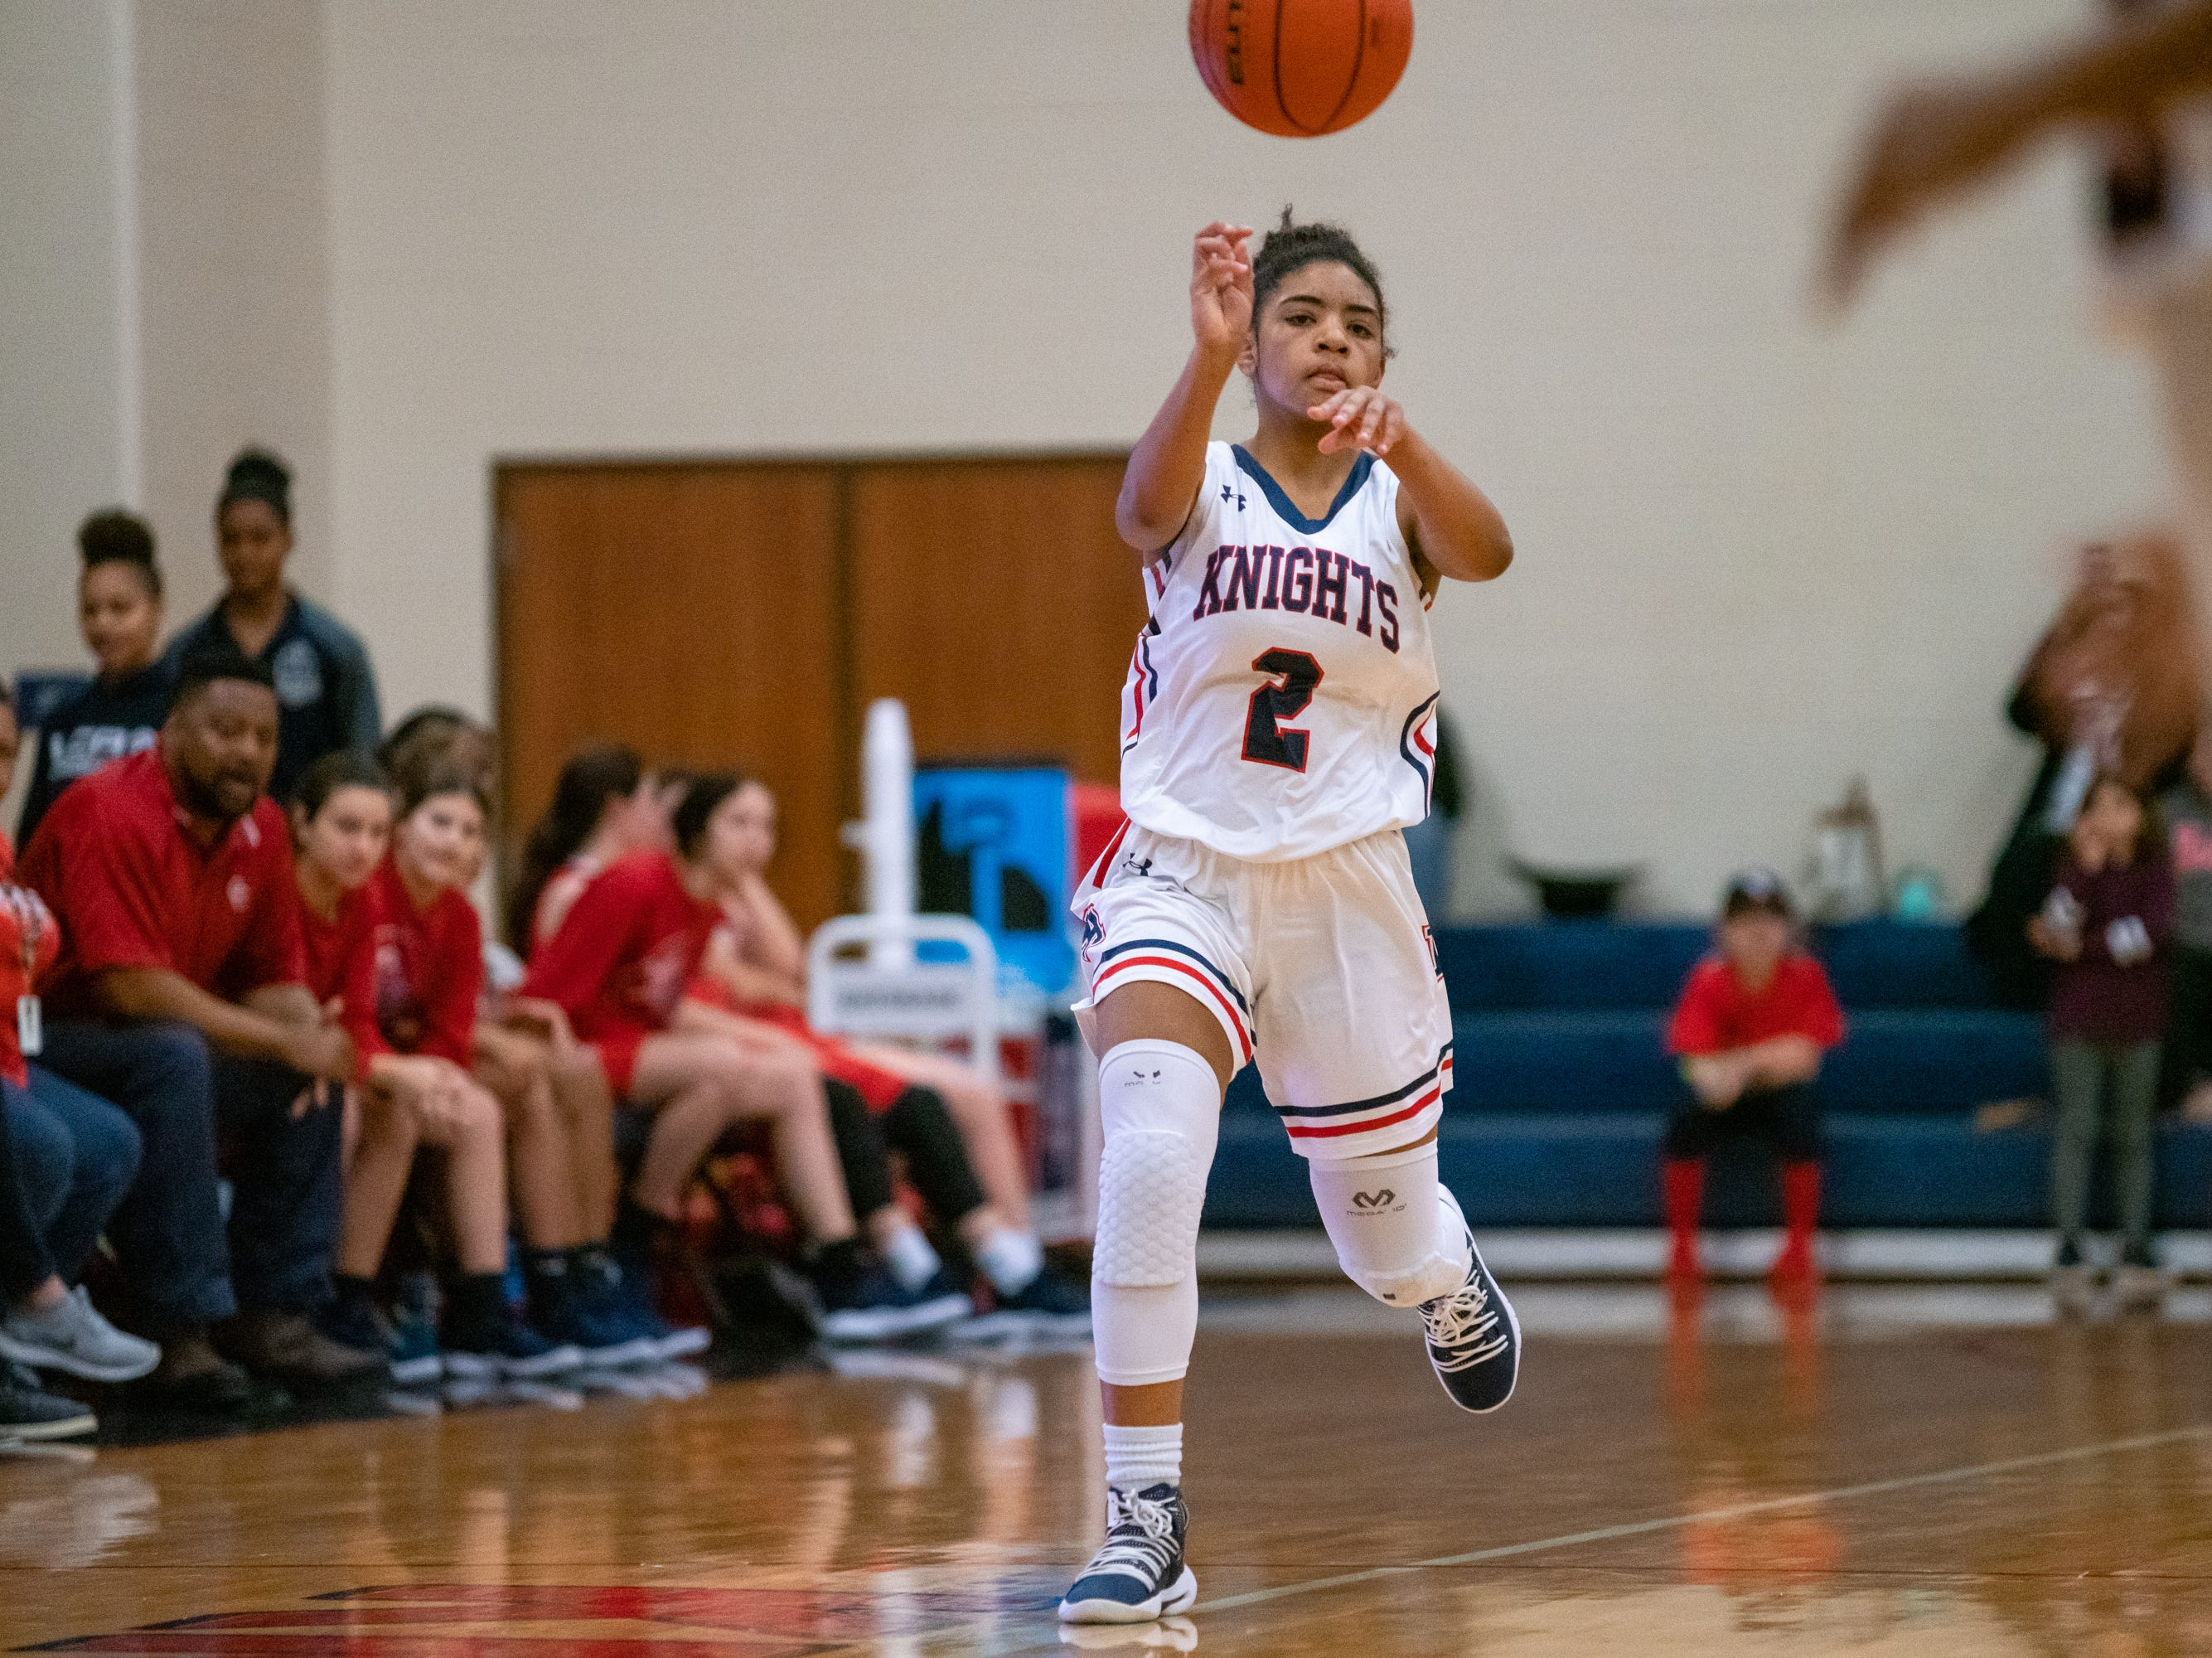 Lafayette Christian's Zoe Wiltz passes the ball down the court as the LCA Knights take on the Central Catholic Eagles at home on Thursday, Feb. 21, 2019.